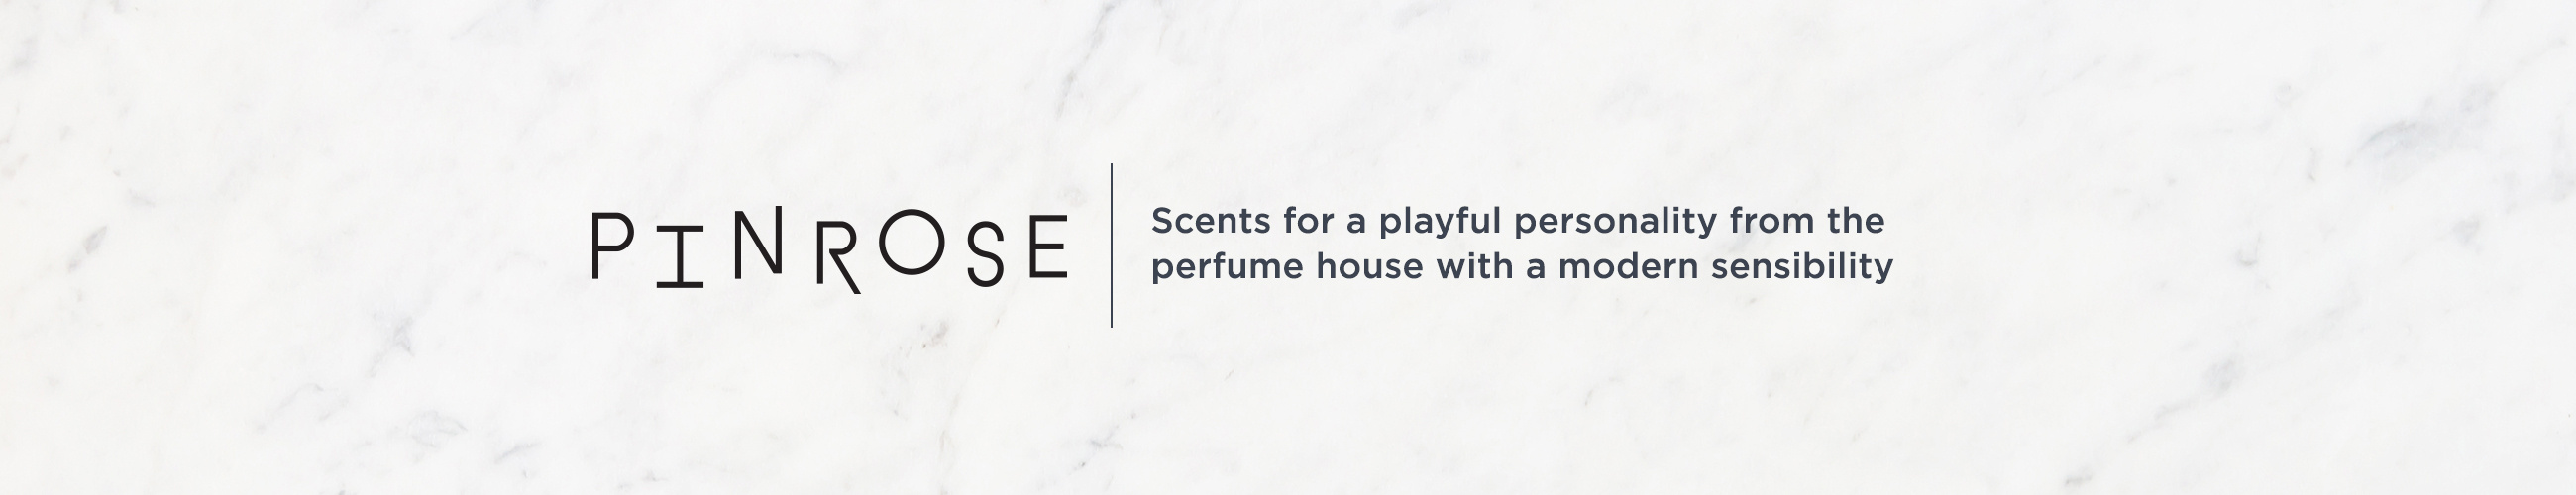 Pinrose. Scents for a playful personality from the perfume house with a modern sensibility